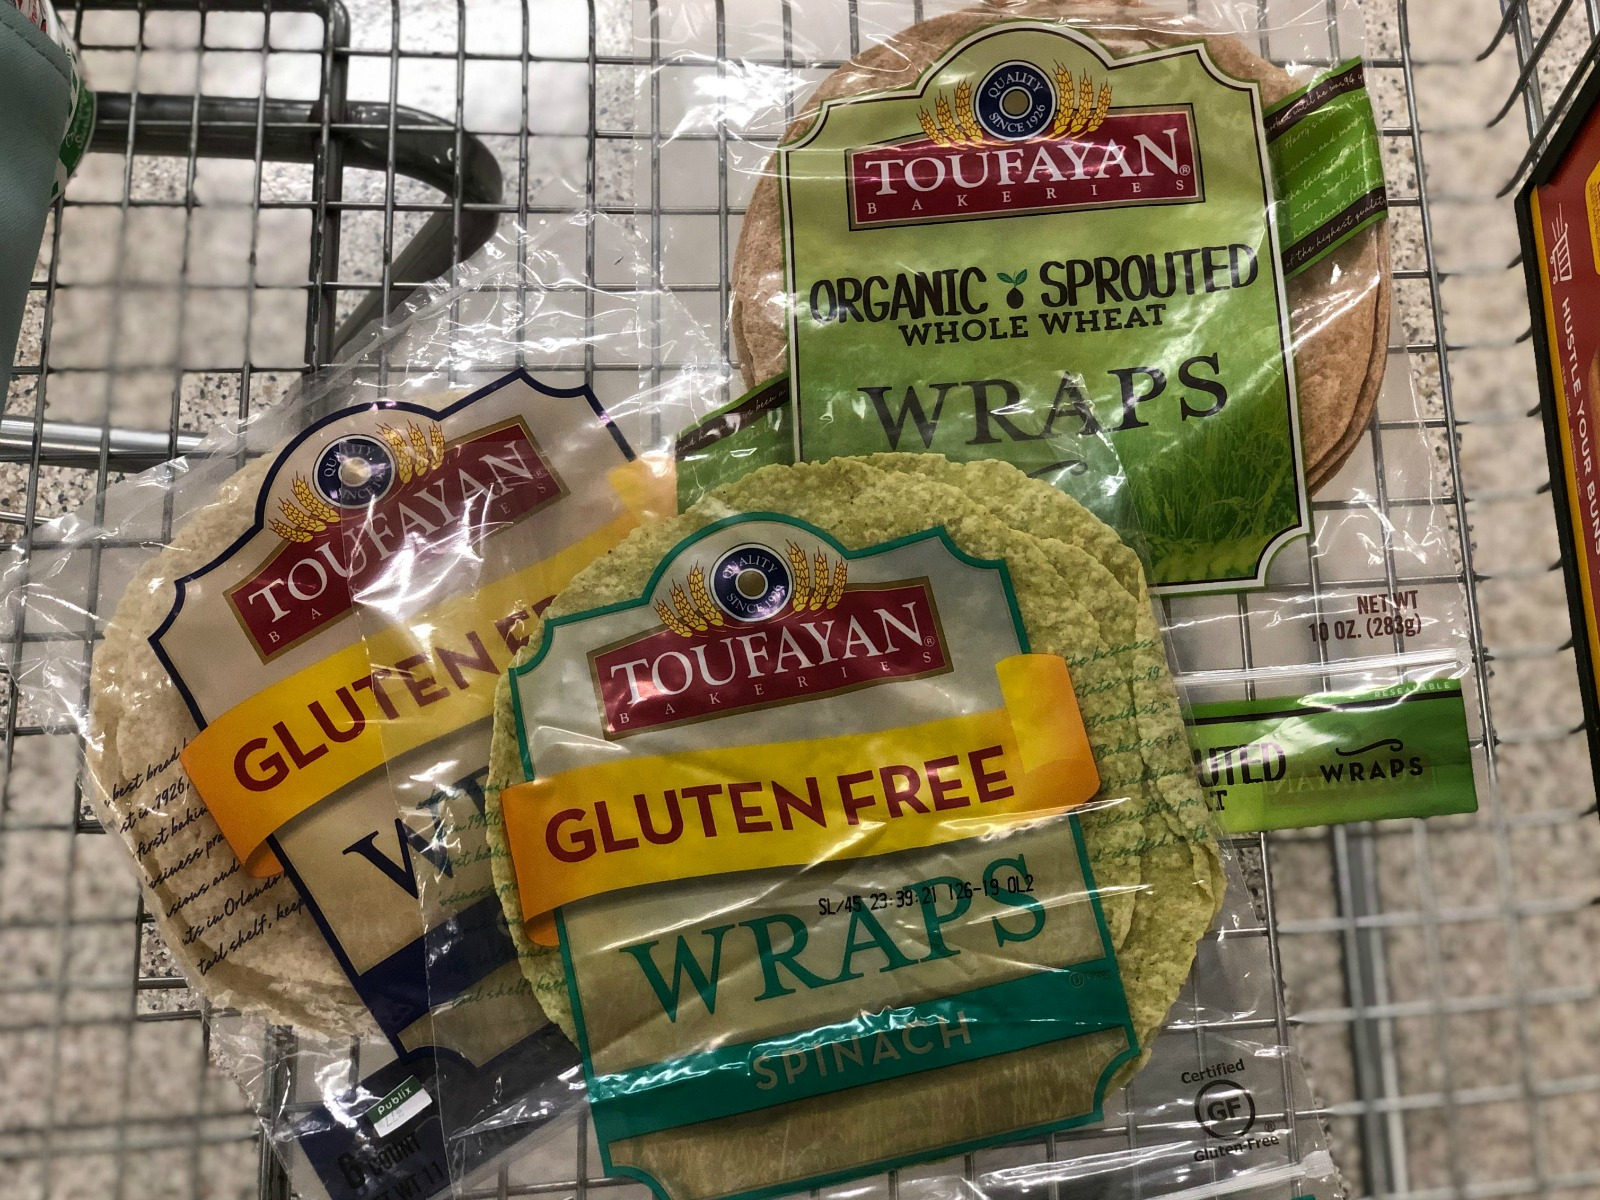 Stock Up On Toufayan Wraps - Unadvertised BOGO Sale This Week At Publix on I Heart Publix